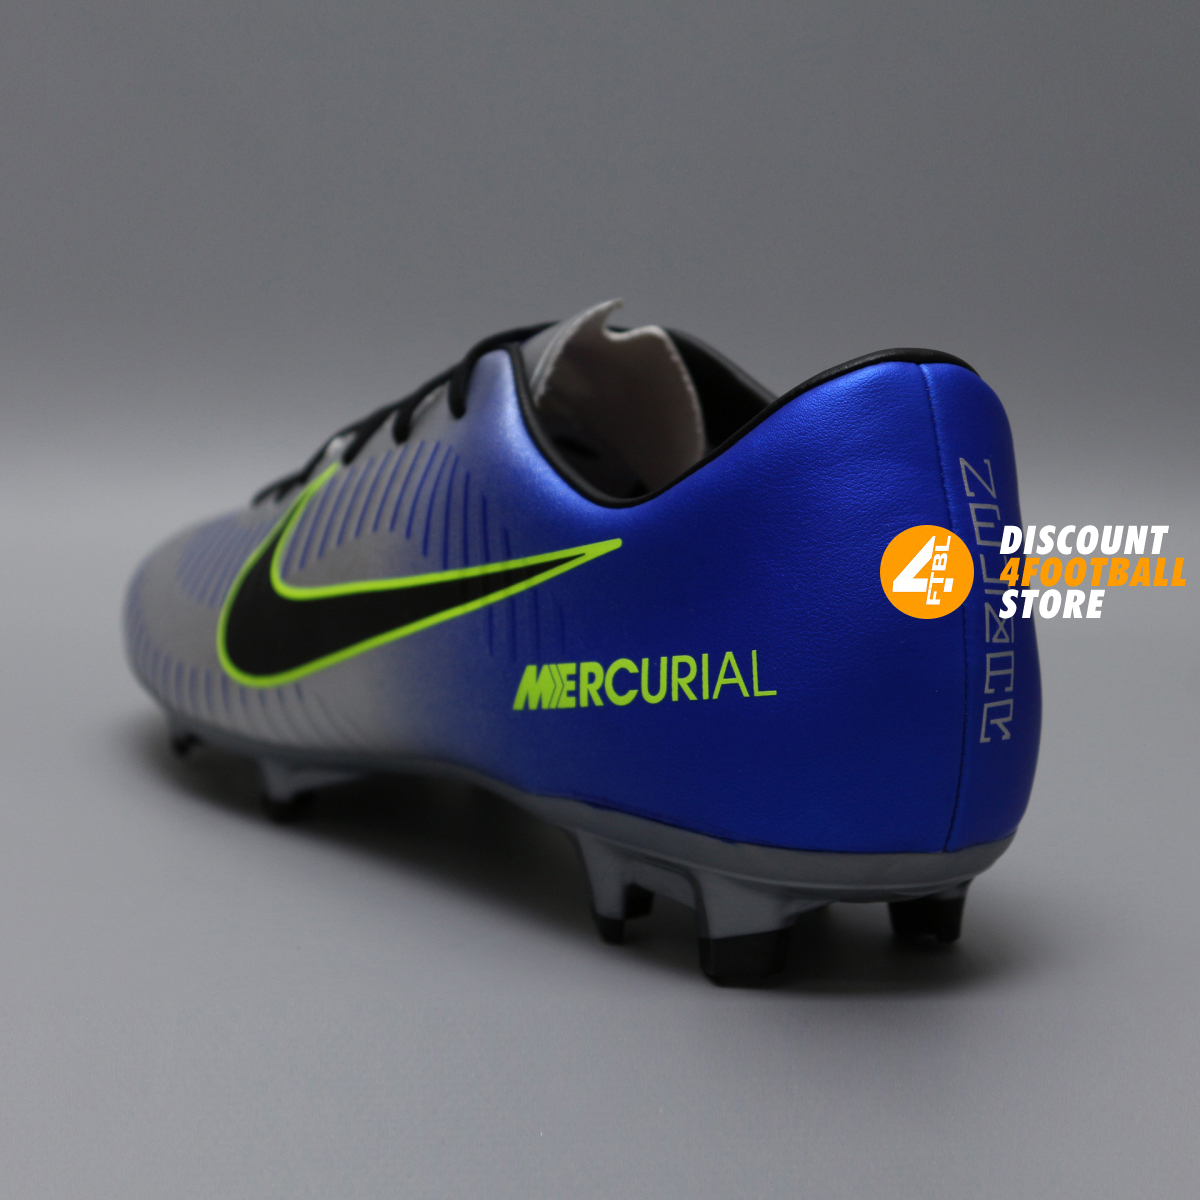 14eea62992da ... Бутсы nike mercurial victory NEYMAR-R9 921509-407 Chrome Blue 4 ...